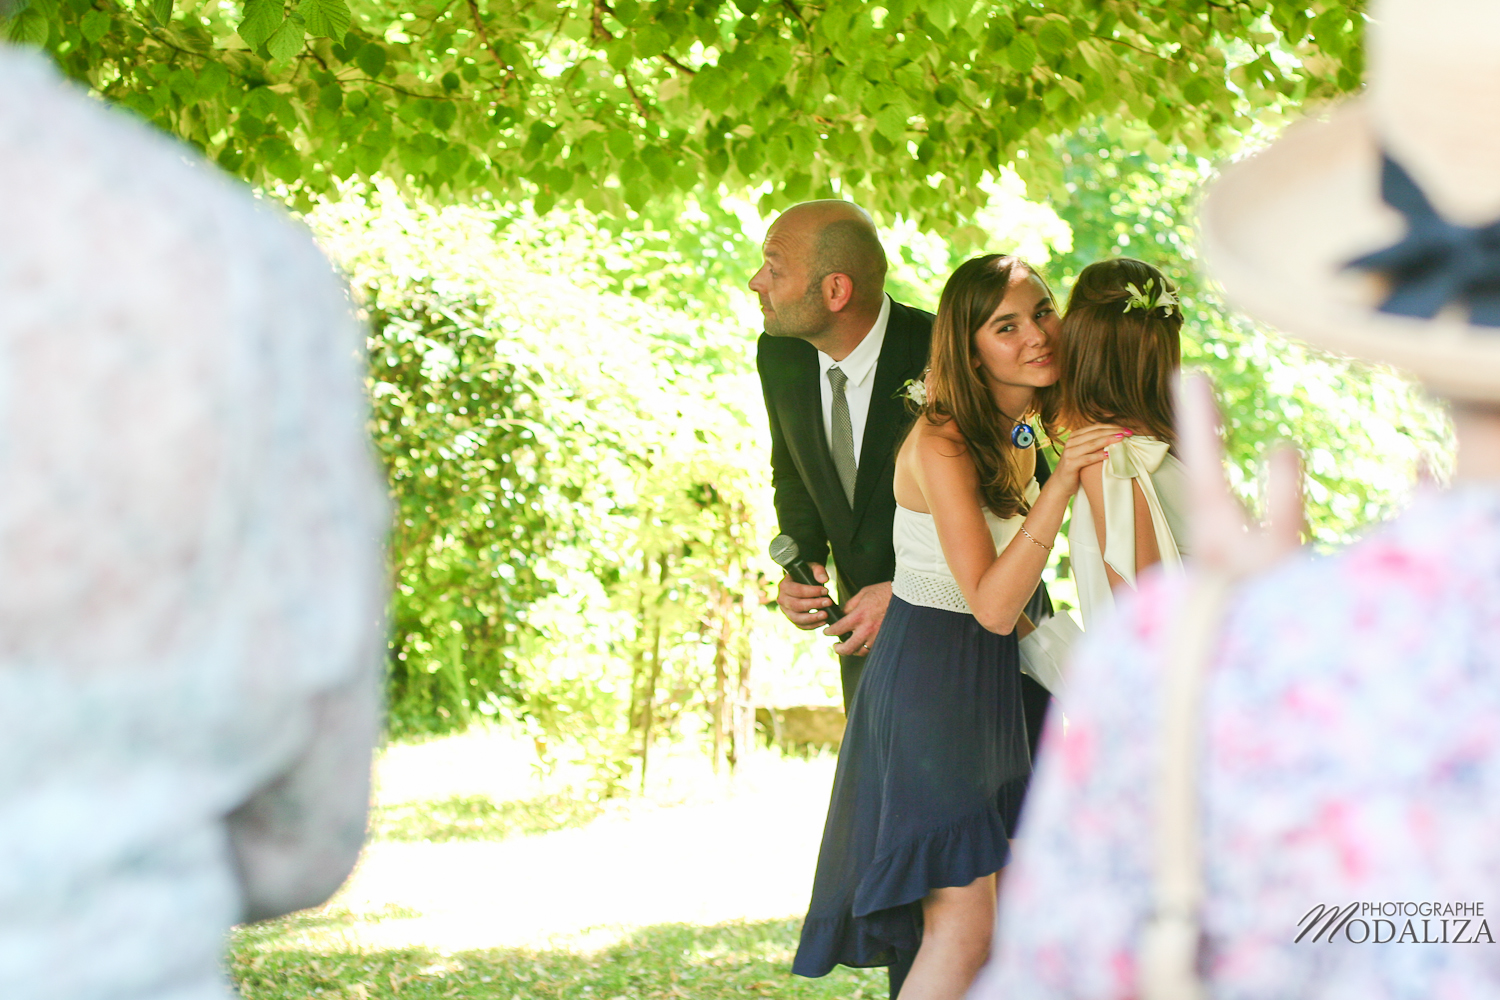 photo mariage temps spirituel ceremonie laique parc sous arbre by modaliza photographe-38